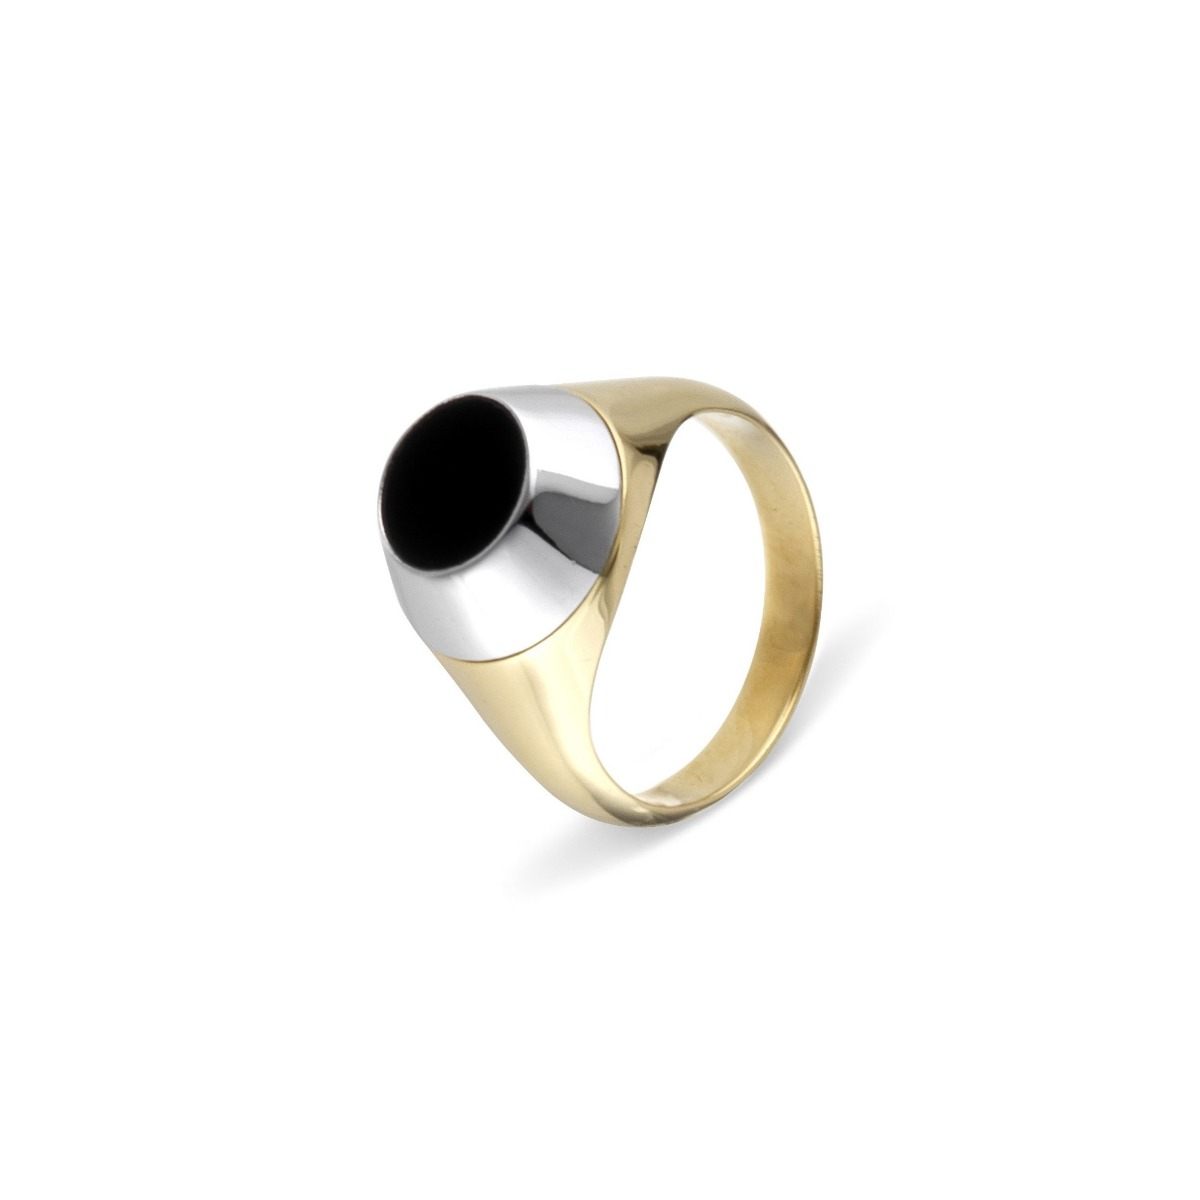 Onyx Disc Ring in 18Kt Yellow Gold